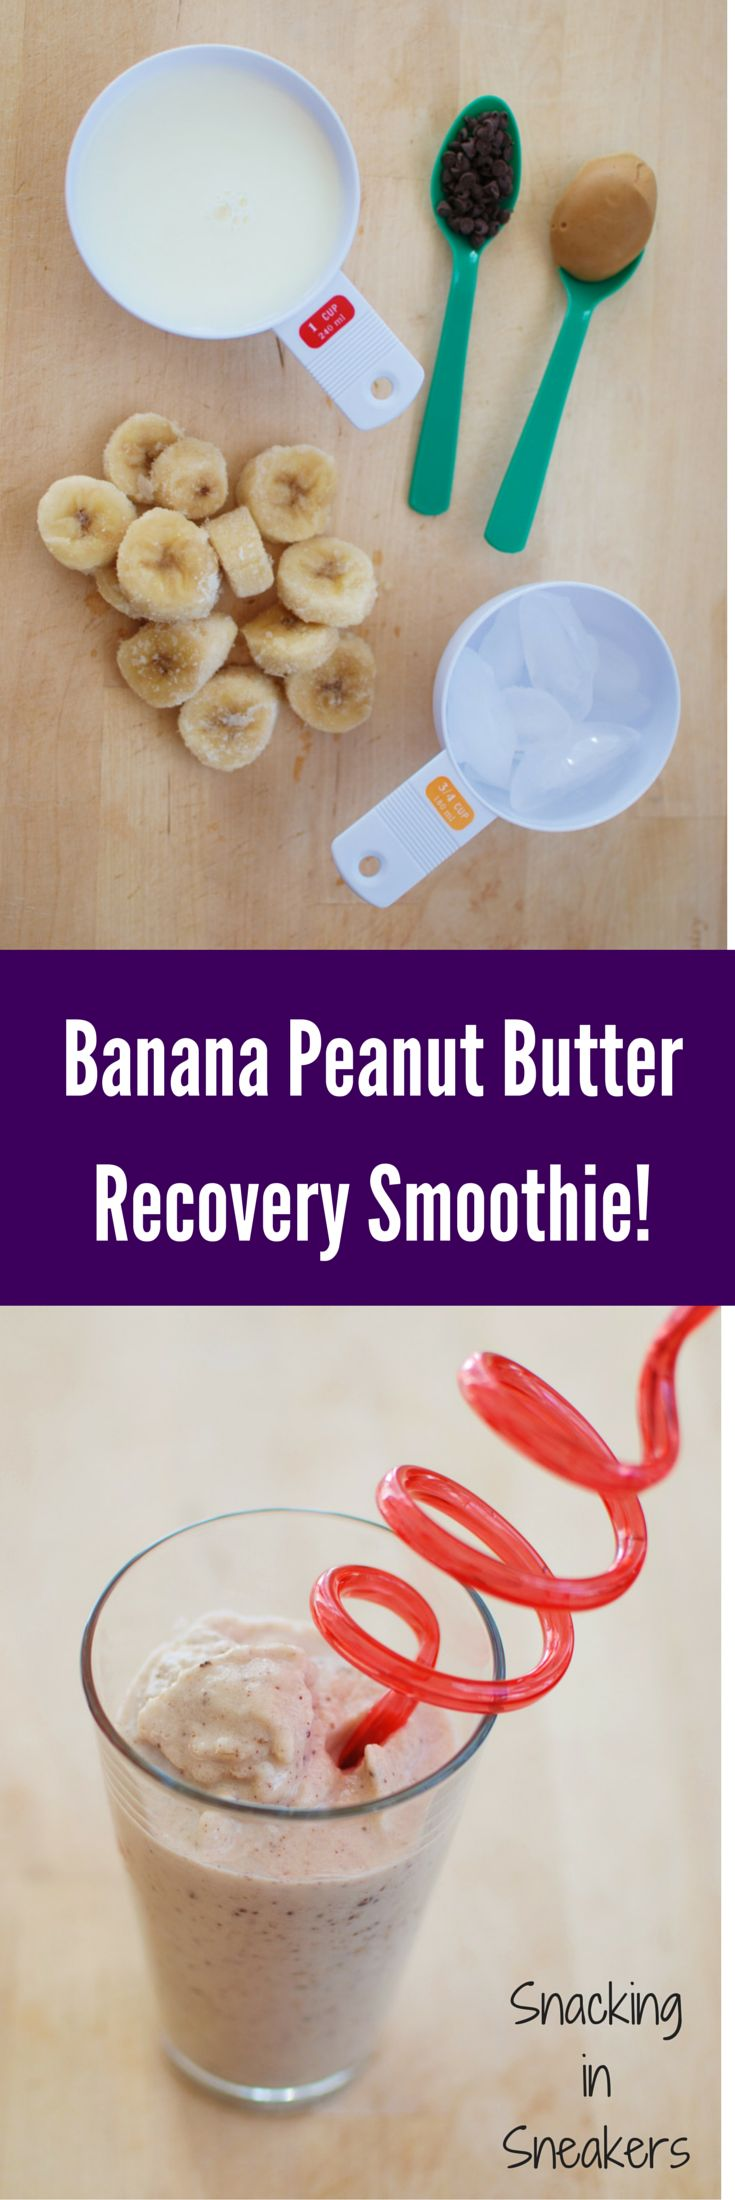 Slow Juicer Peanut Butter : 51 best The Marathon Runner s Diet images on Pinterest Healthy eating, Healthy meals and ...